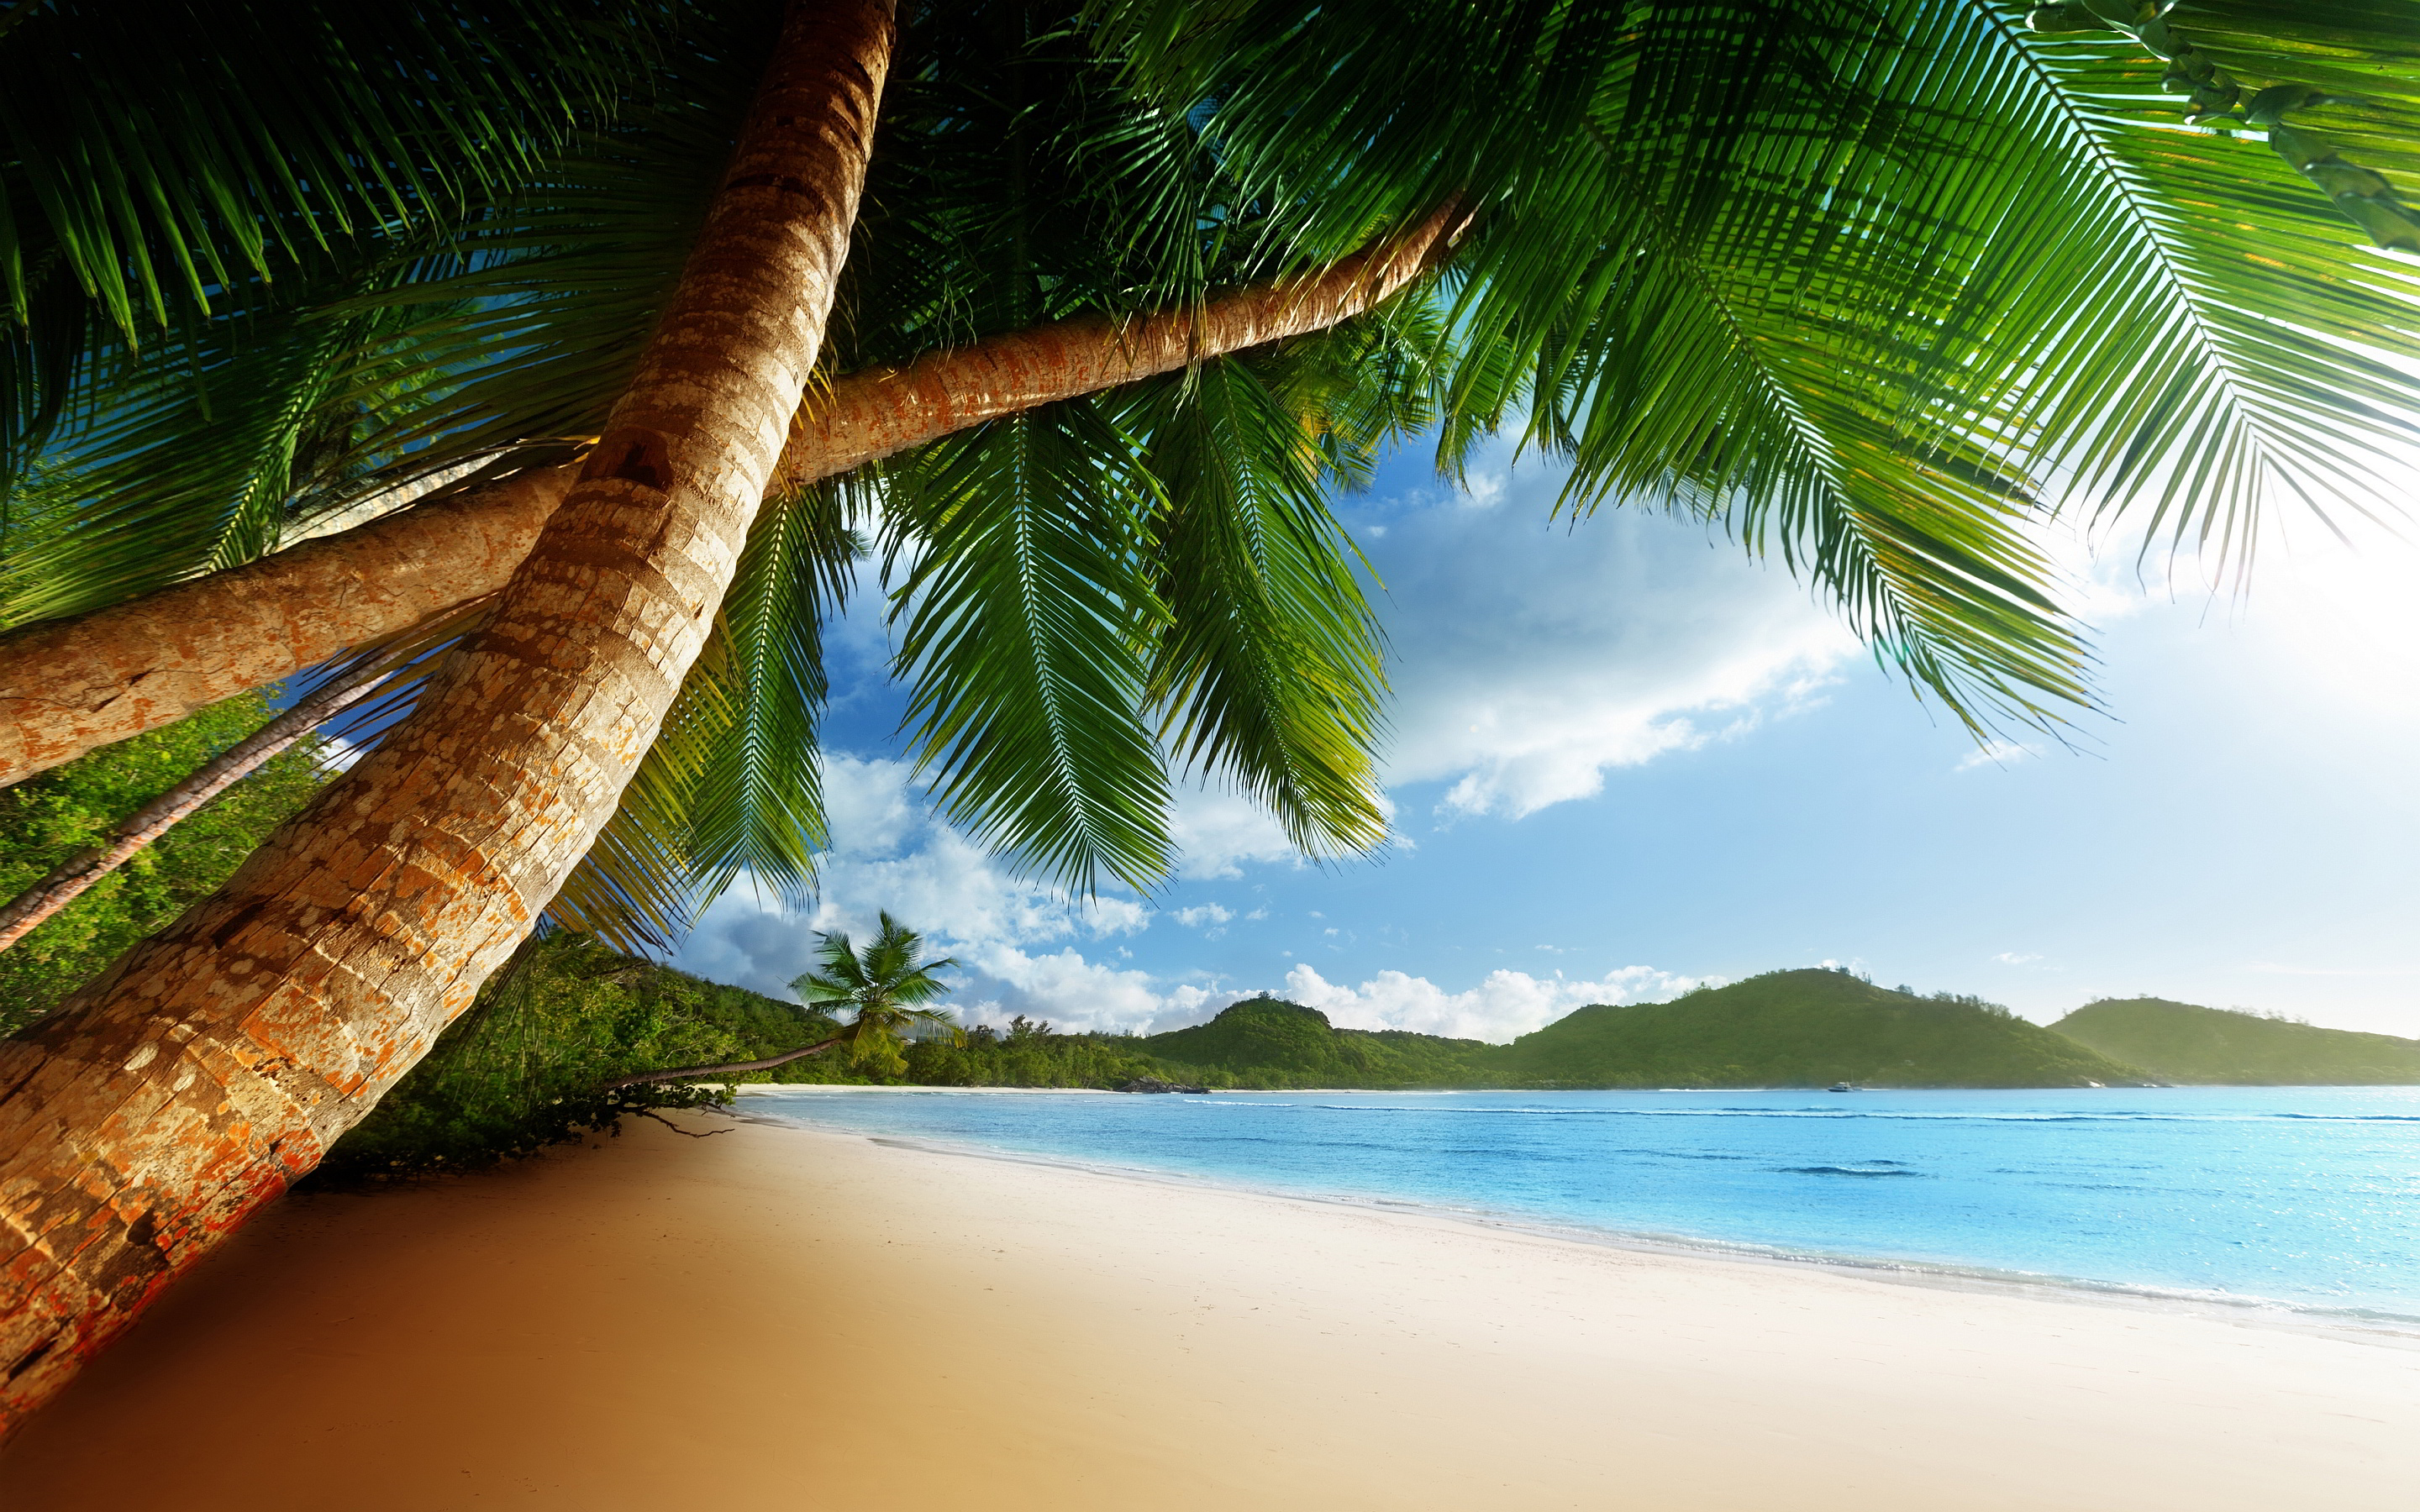 Beach Pictures Hd Wallpapers: Beach Caribbean - HD Desktop Wallpapers